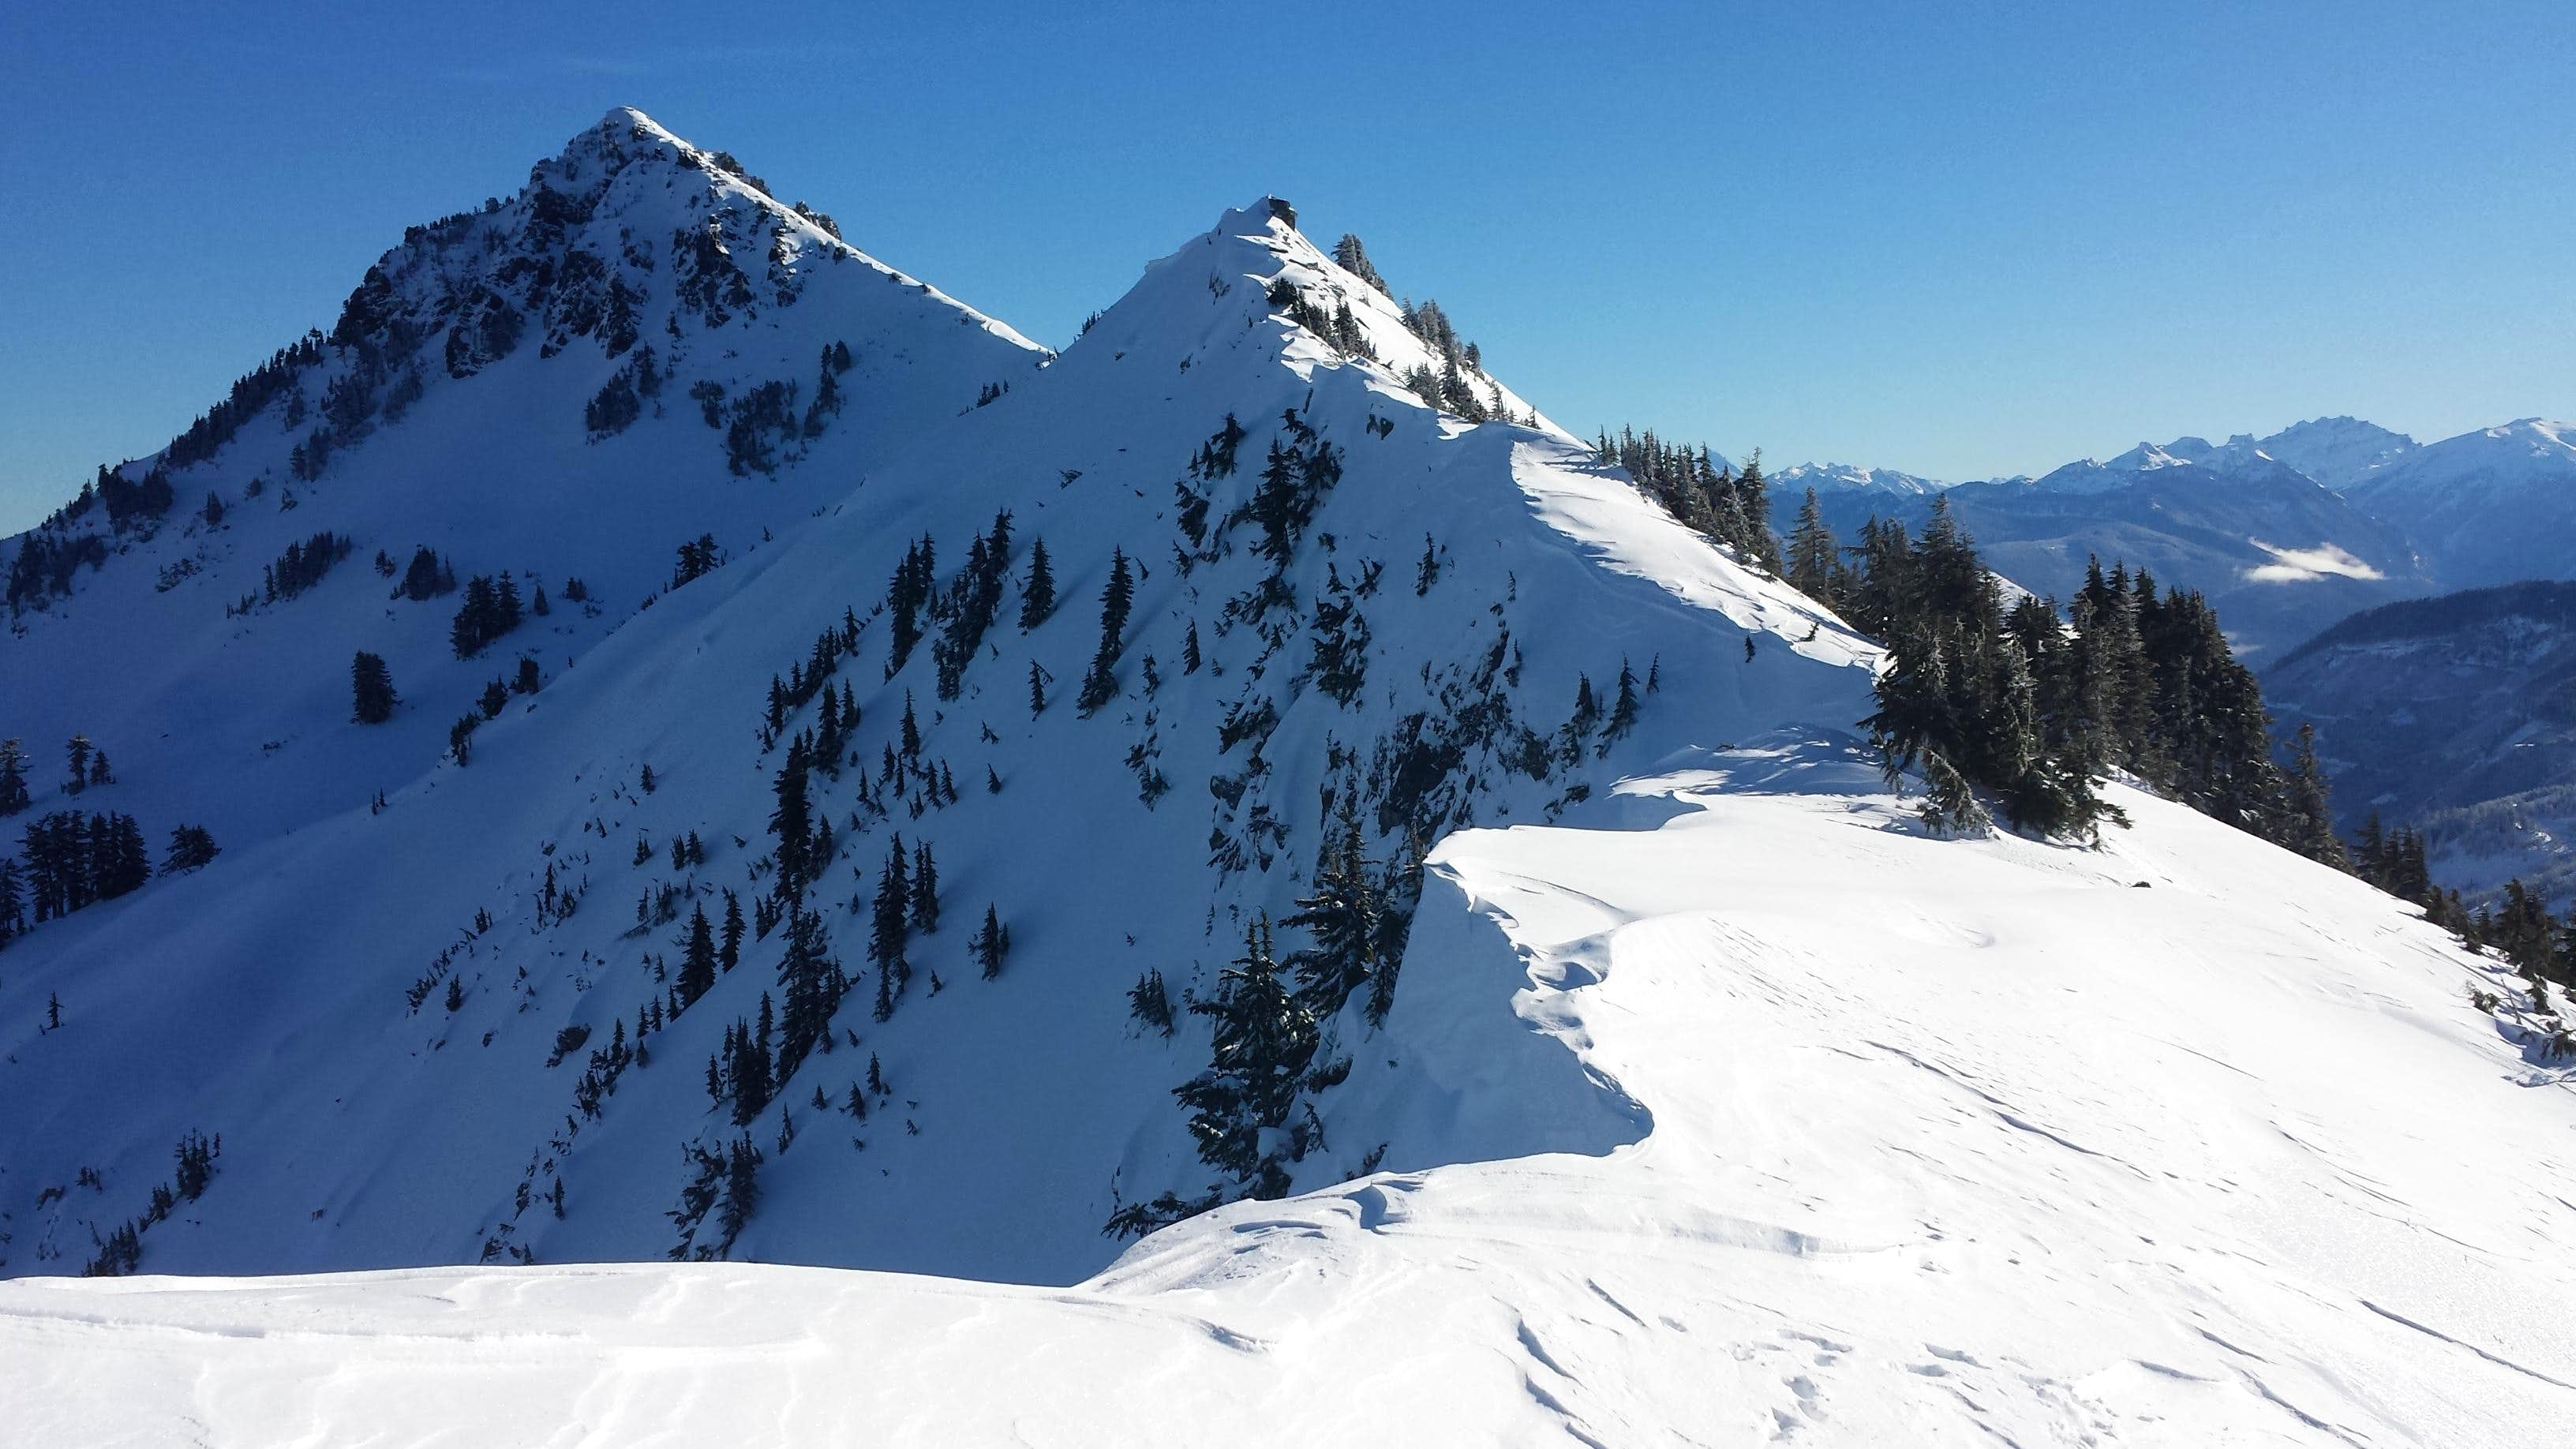 First Summit of 2014: Mount Townsend (Highway 2)